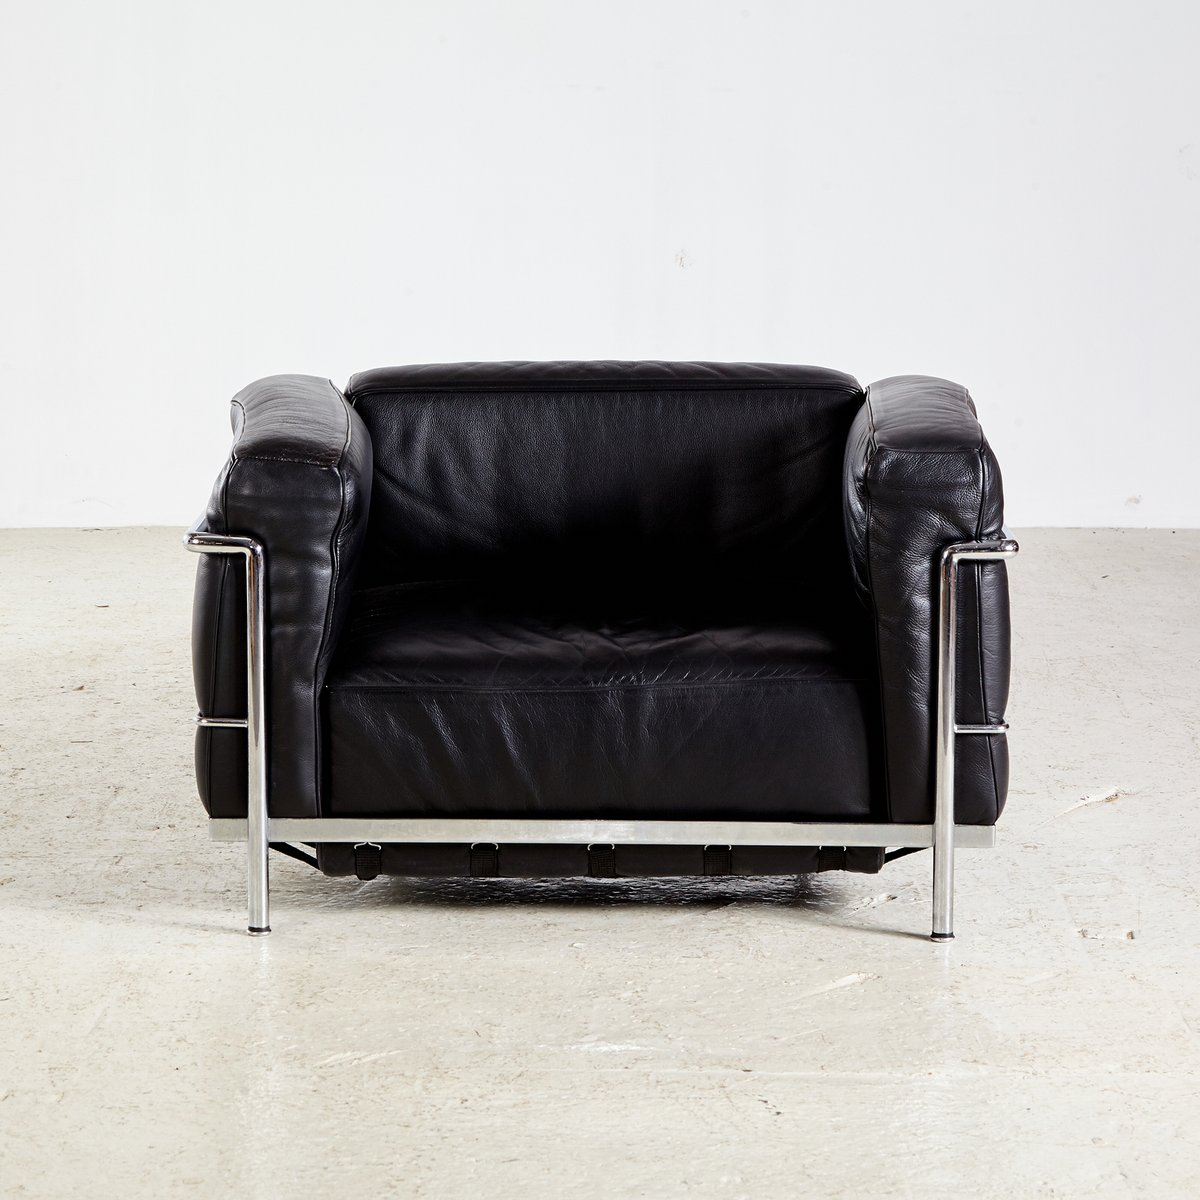 vintage lc3 sessel von le corbusier f r cassina bei pamono kaufen. Black Bedroom Furniture Sets. Home Design Ideas